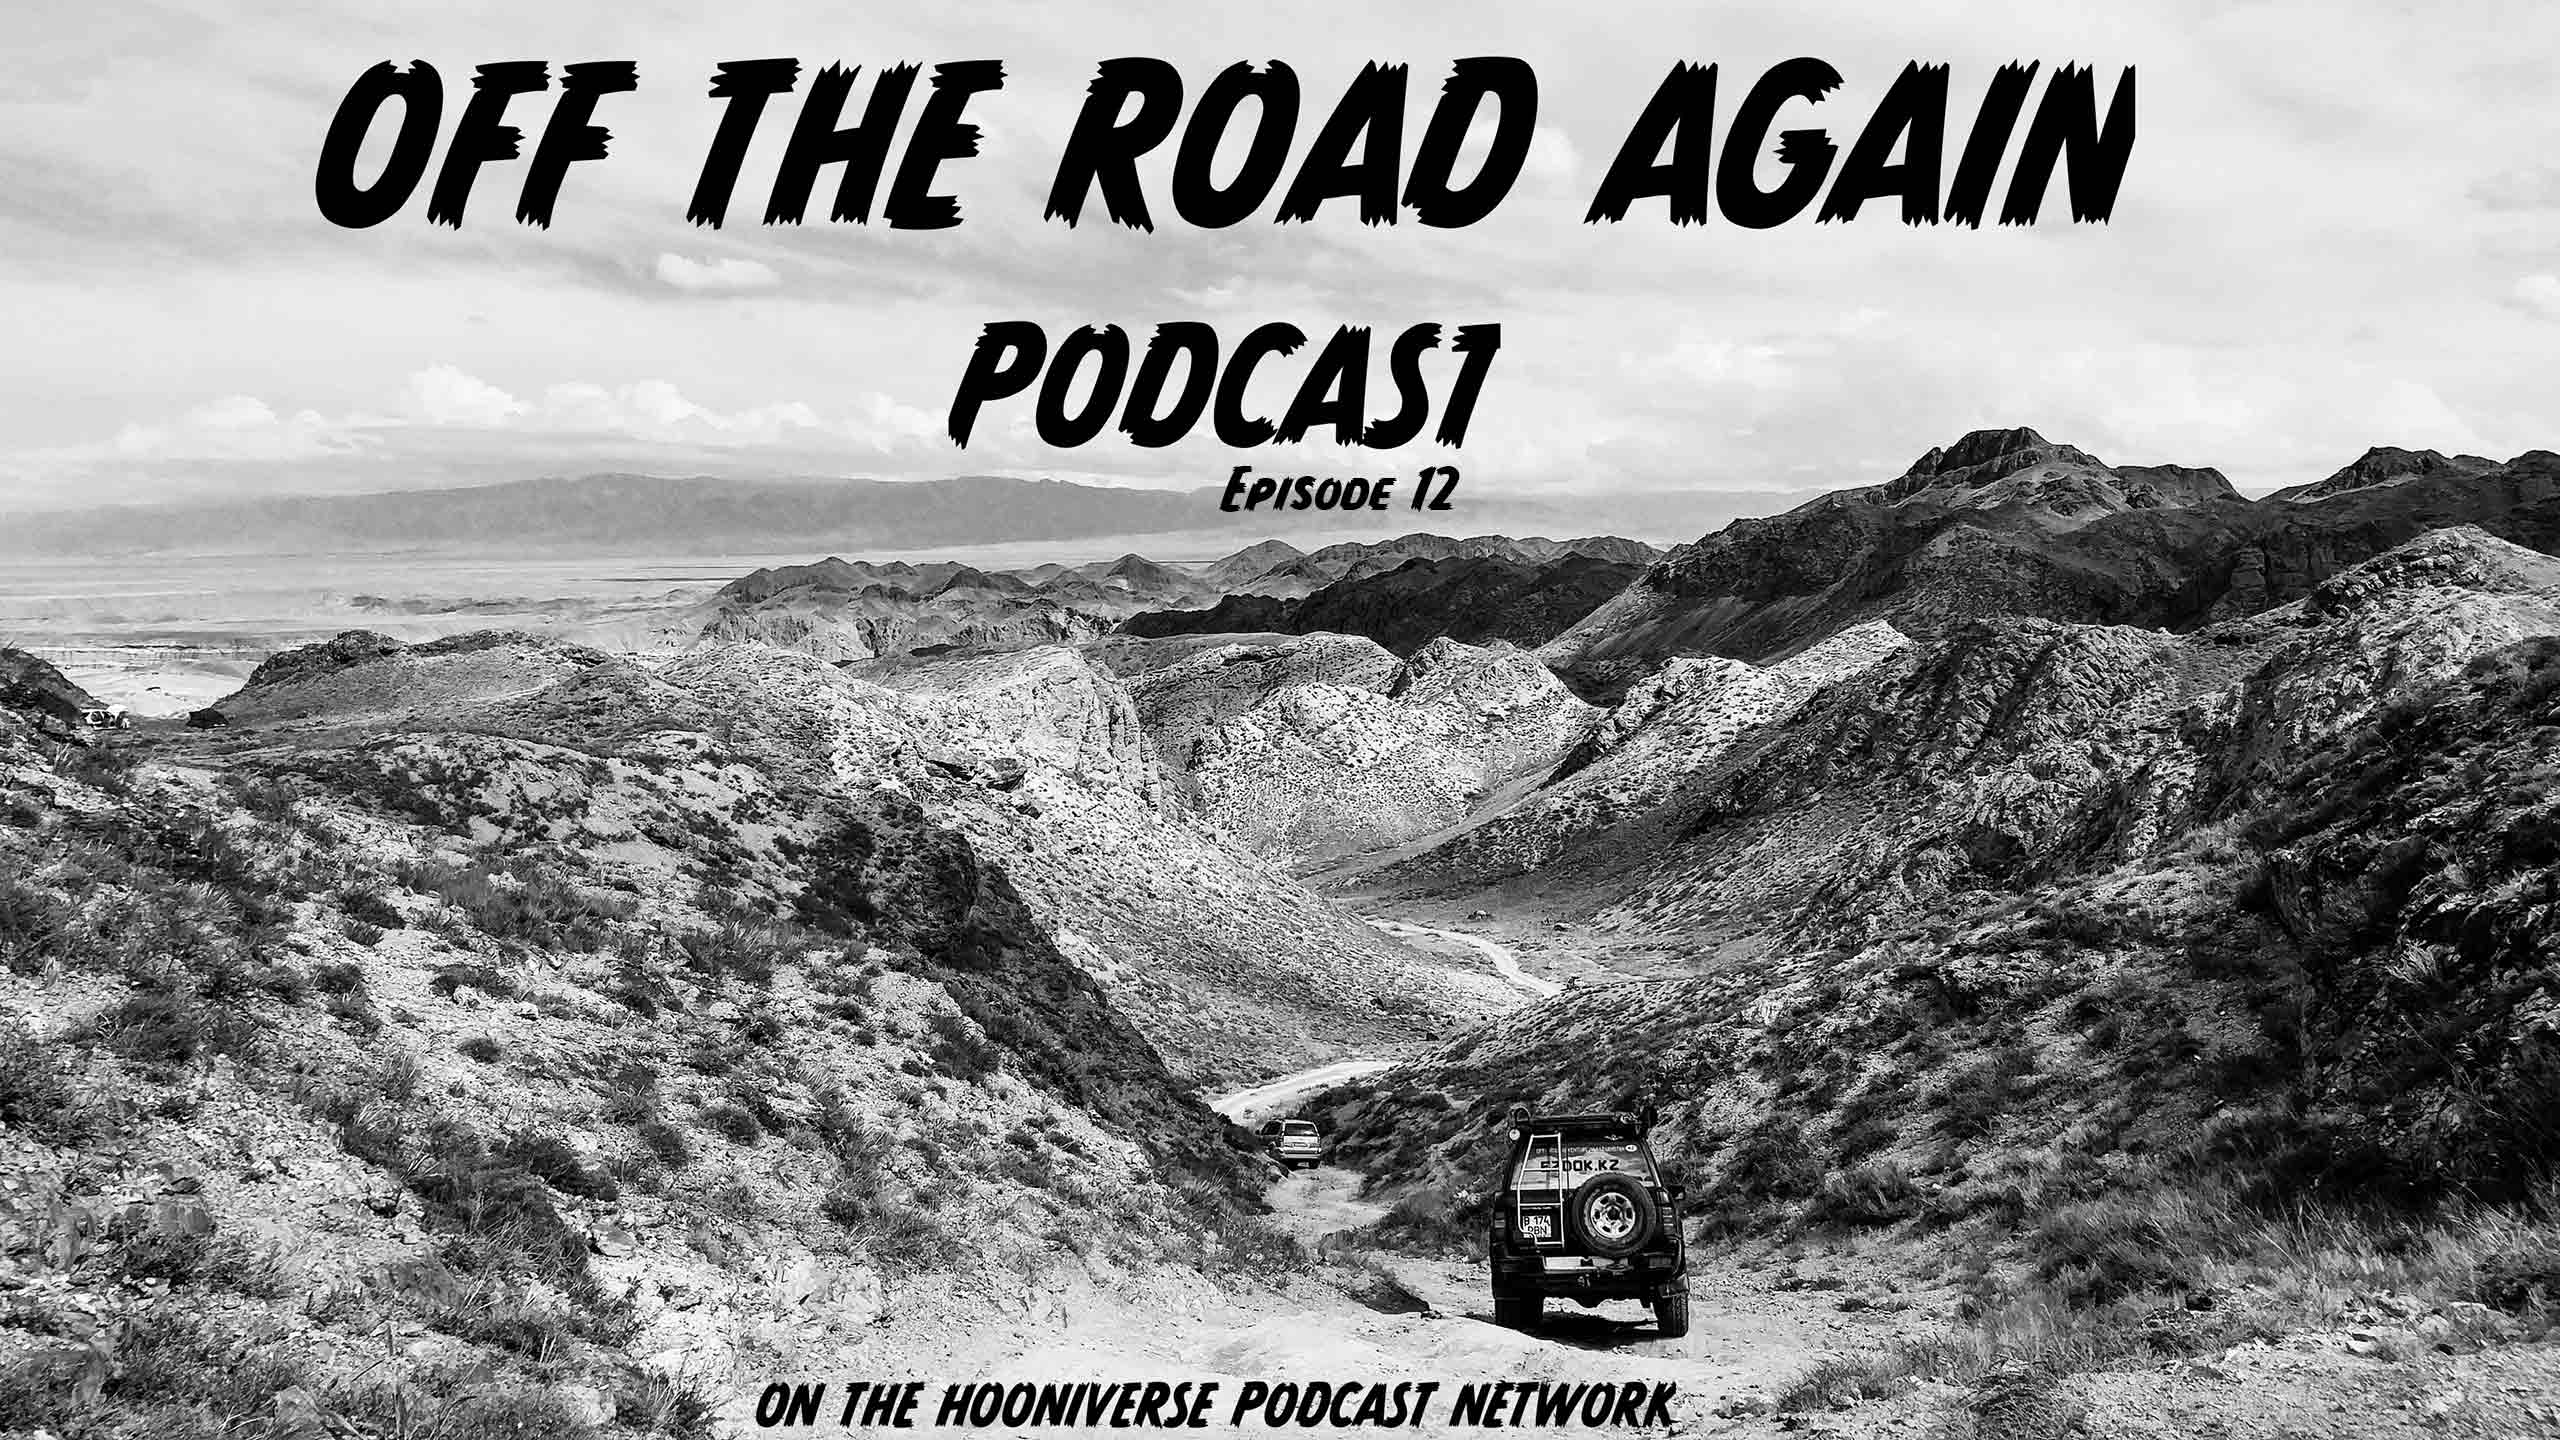 Off The Road Again Podcast - Episode 12